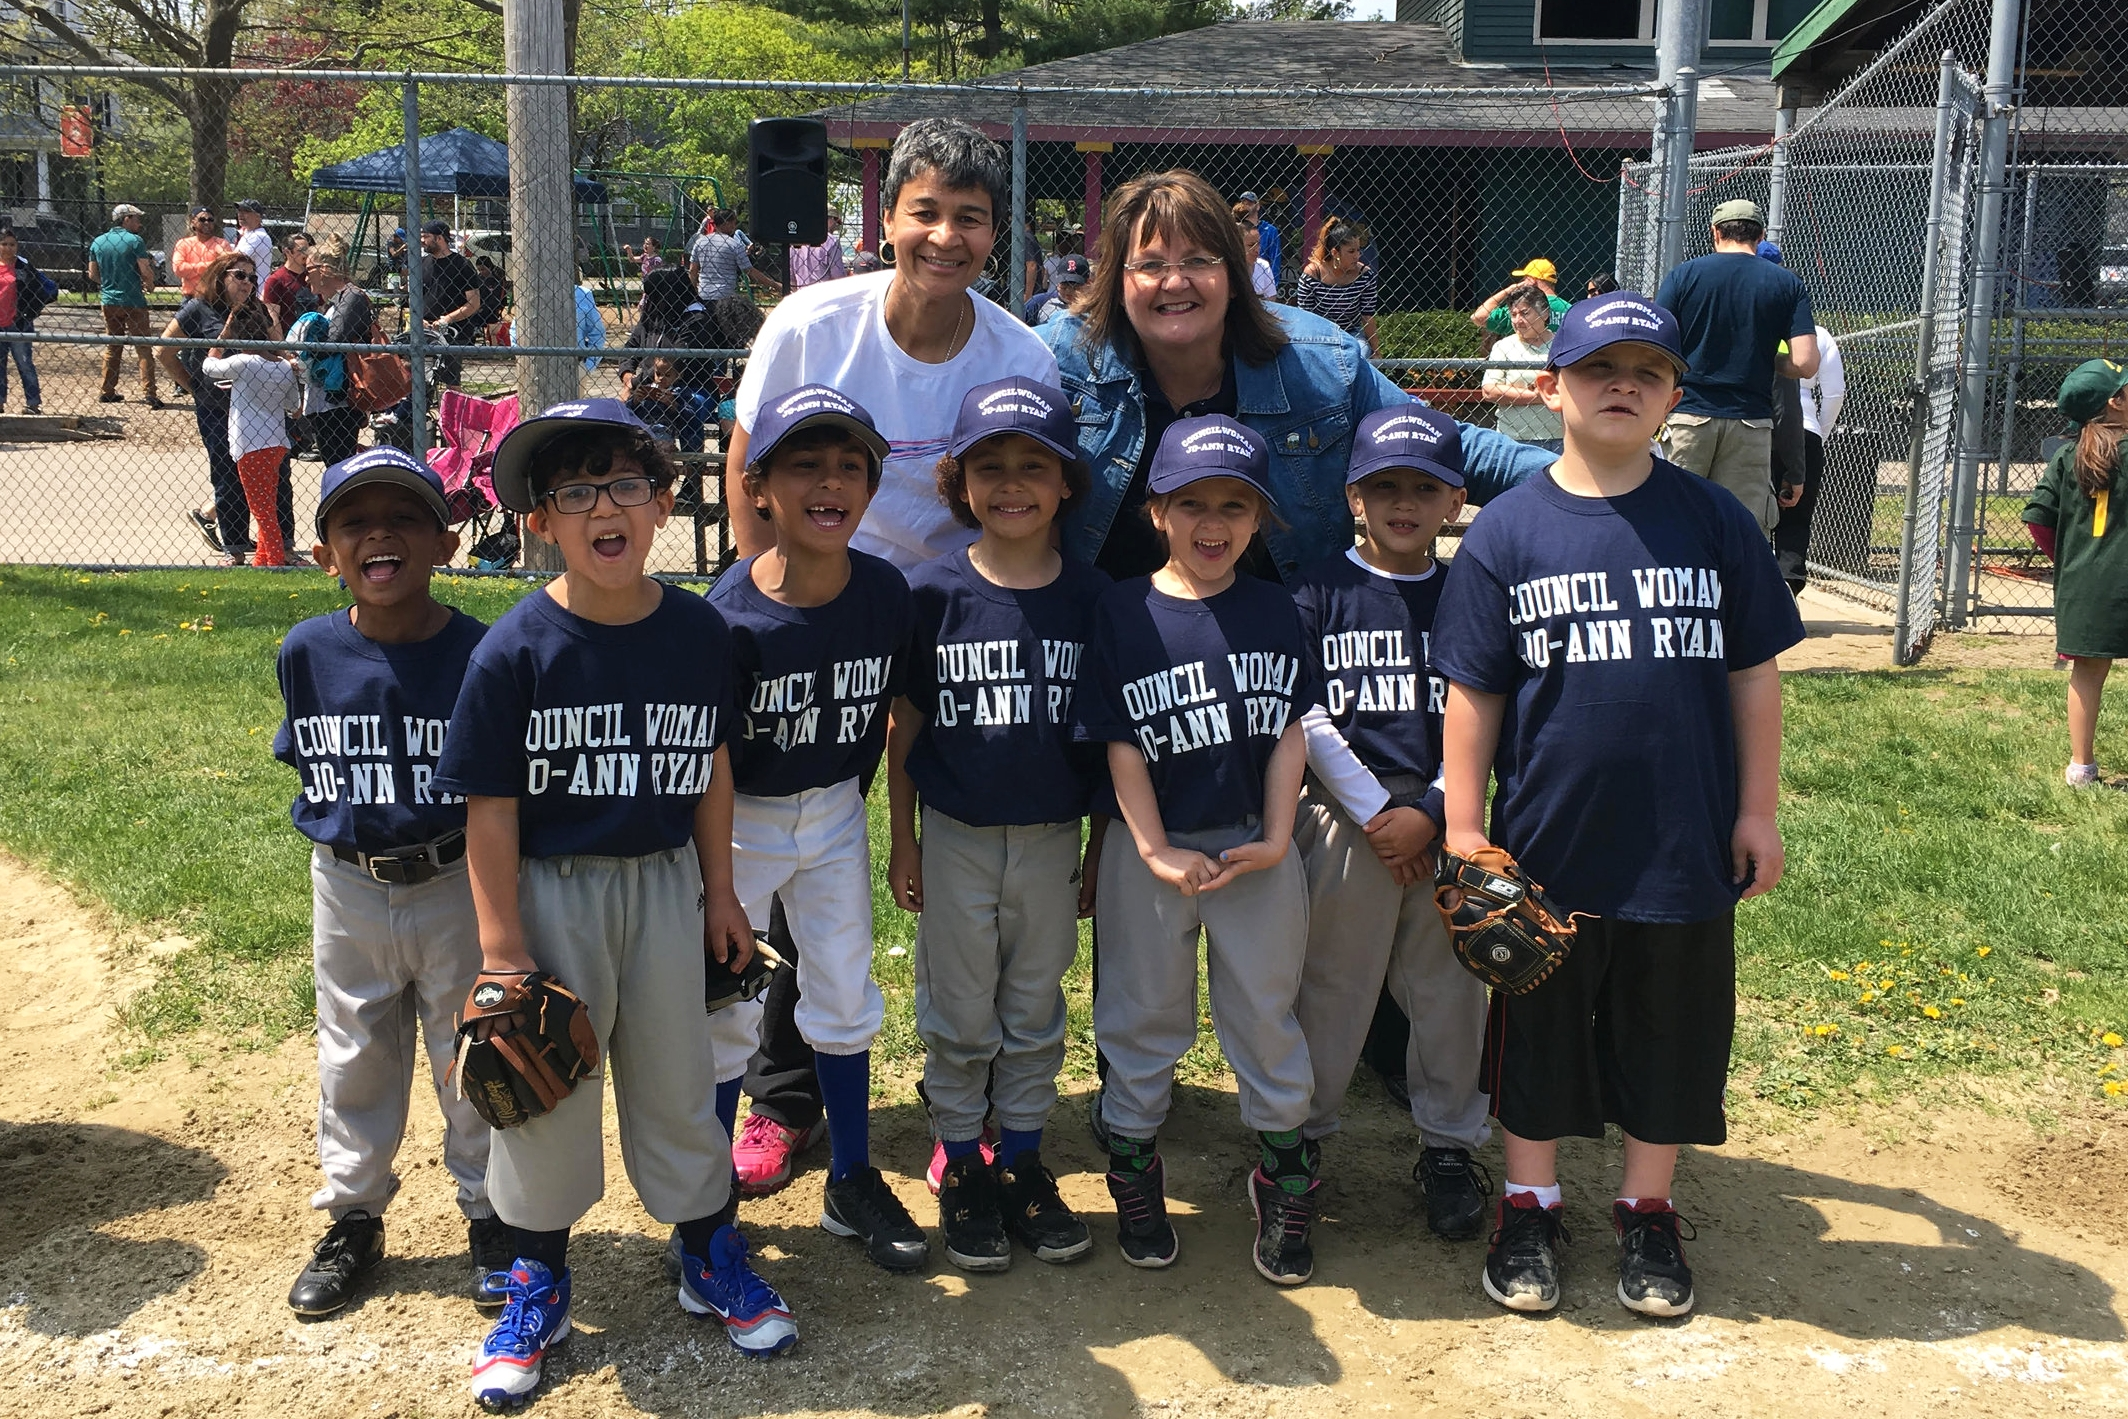 Jo-Ann_Ryan_images_littleleagueteam.jpg